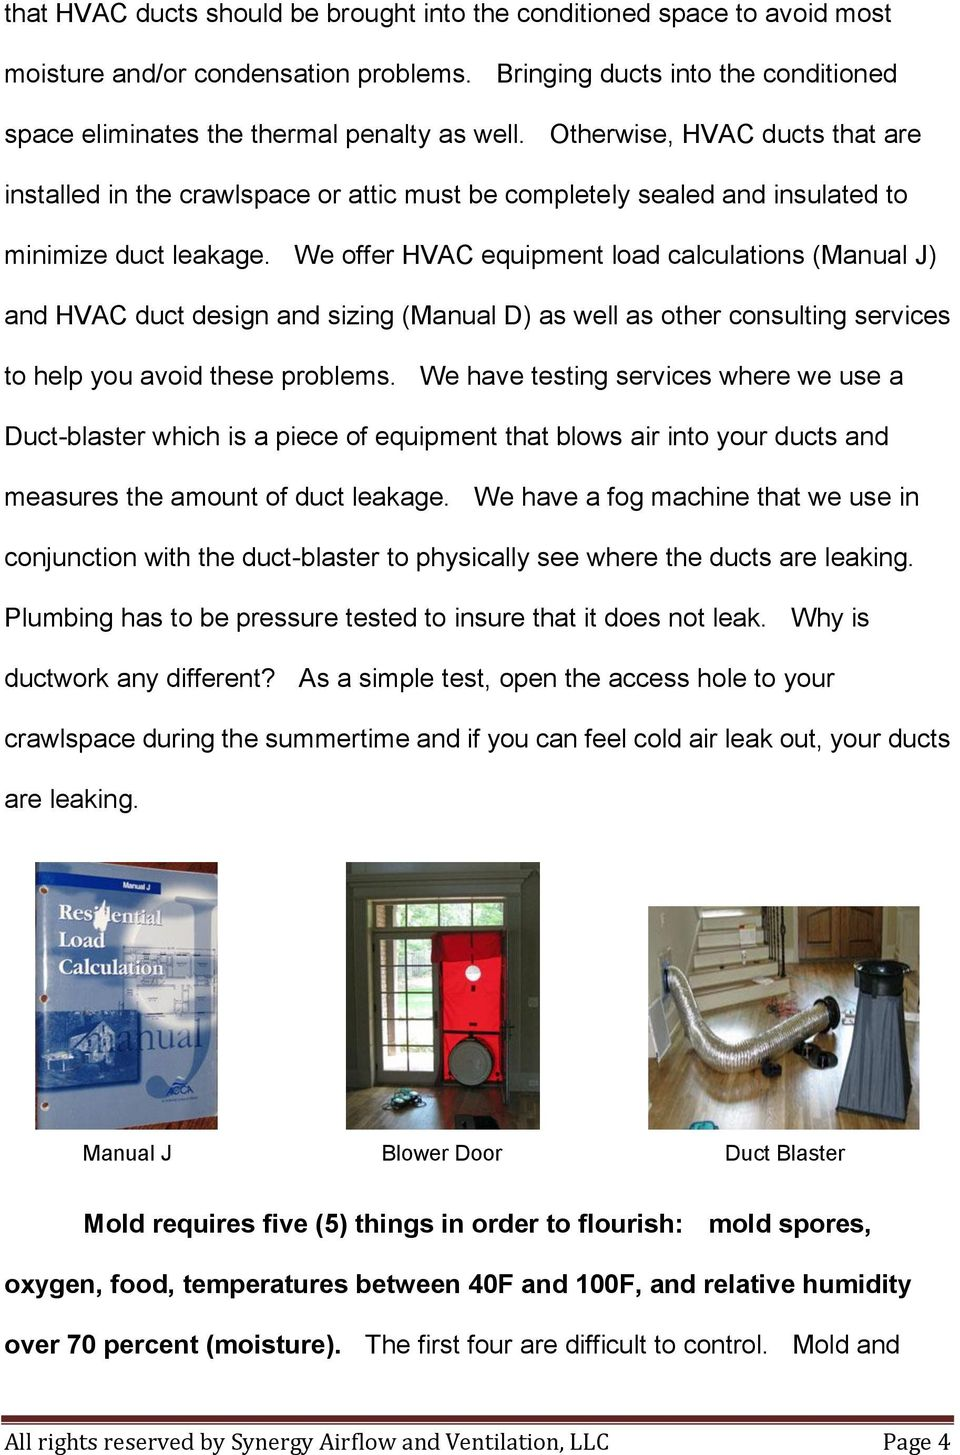 We offer HVAC equipment load calculations (Manual J) and HVAC duct design and sizing (Manual D) as well as other consulting services to help you avoid these problems.